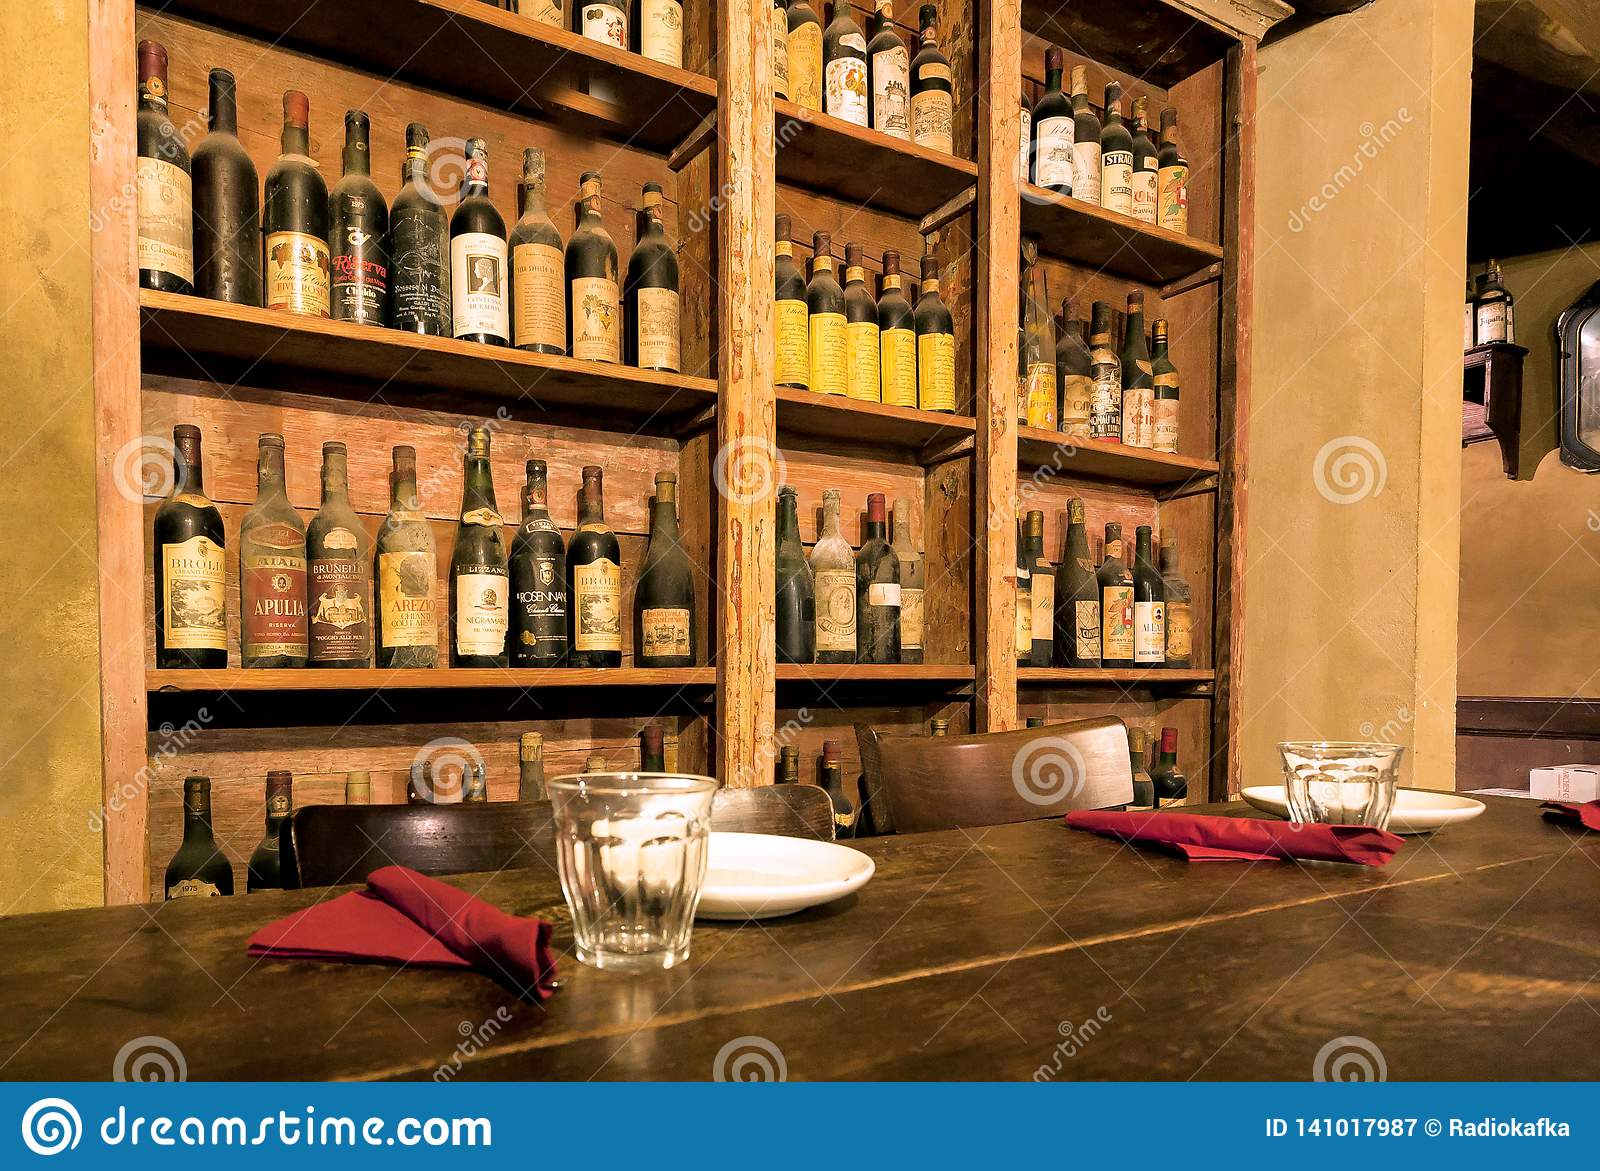 Wine Bottles Waiting For Visitors Of The Traditional Italian Restaurant With Wooden Tables Nice Decor Editorial Photography Image Of People Italy 141017987